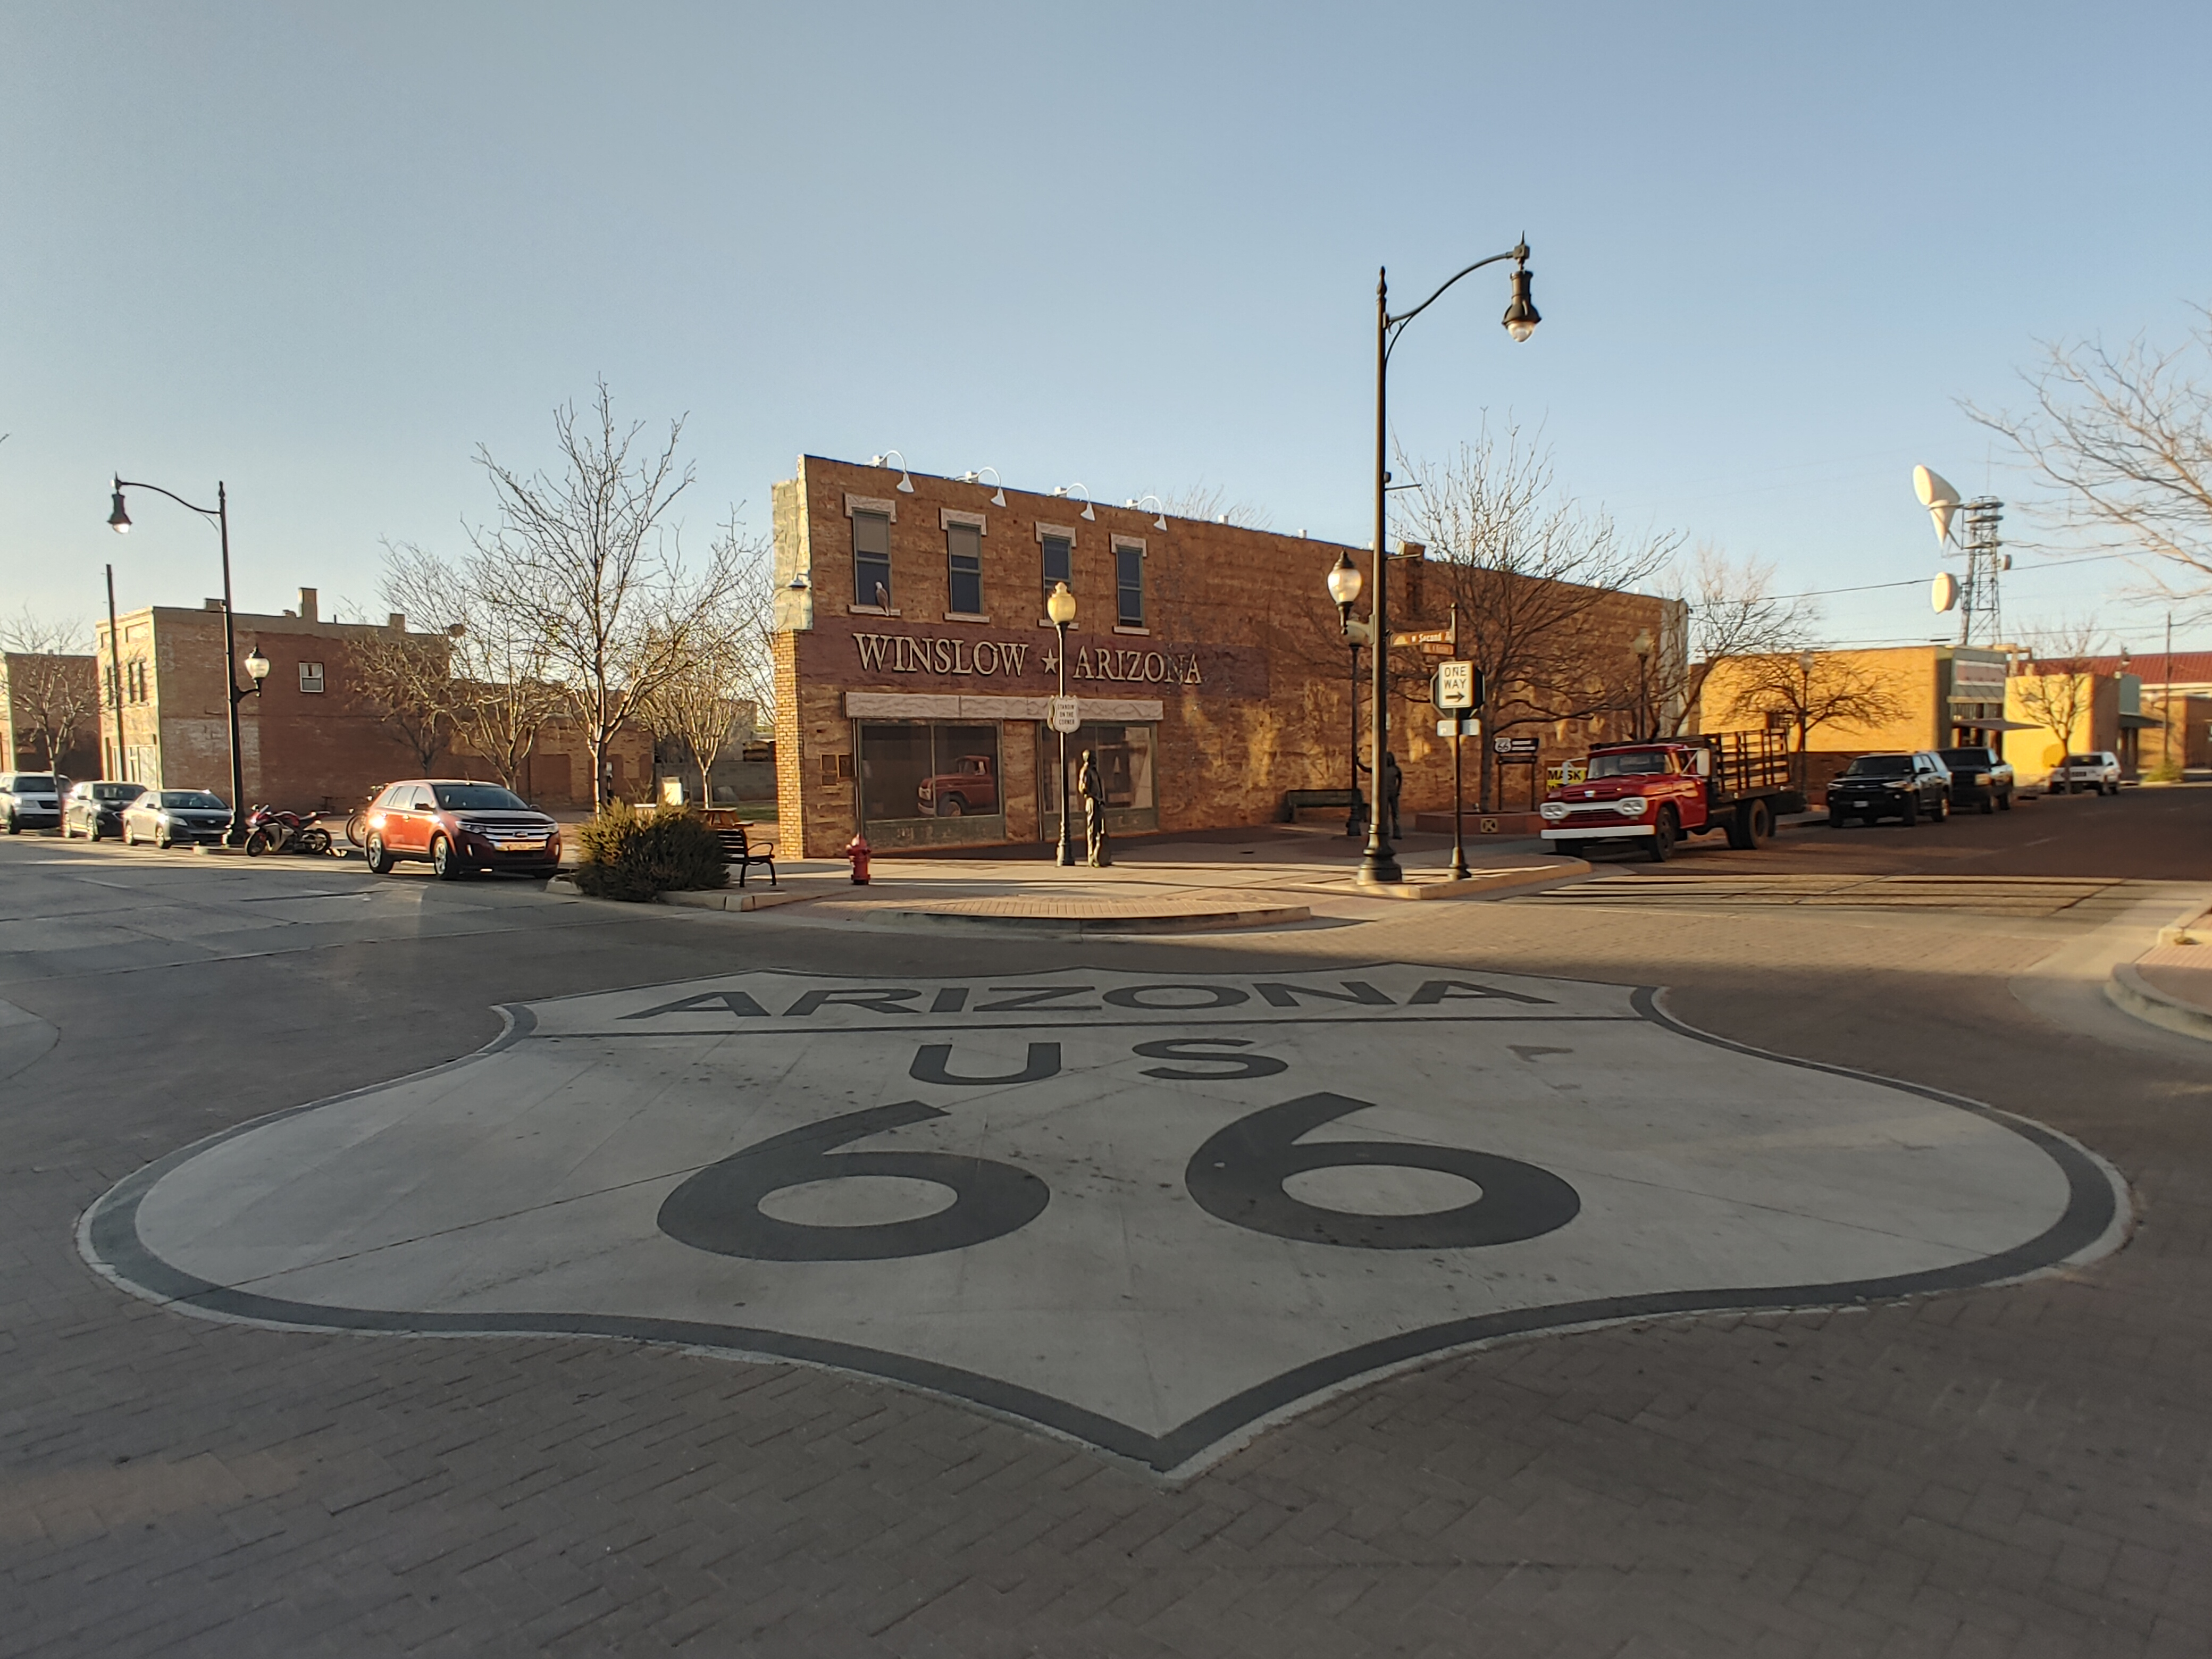 A family friendly journey along route 66 is the ultimate road trip for any family! Learn about the history and culture while having a blast!  #route66 #familyfriendly